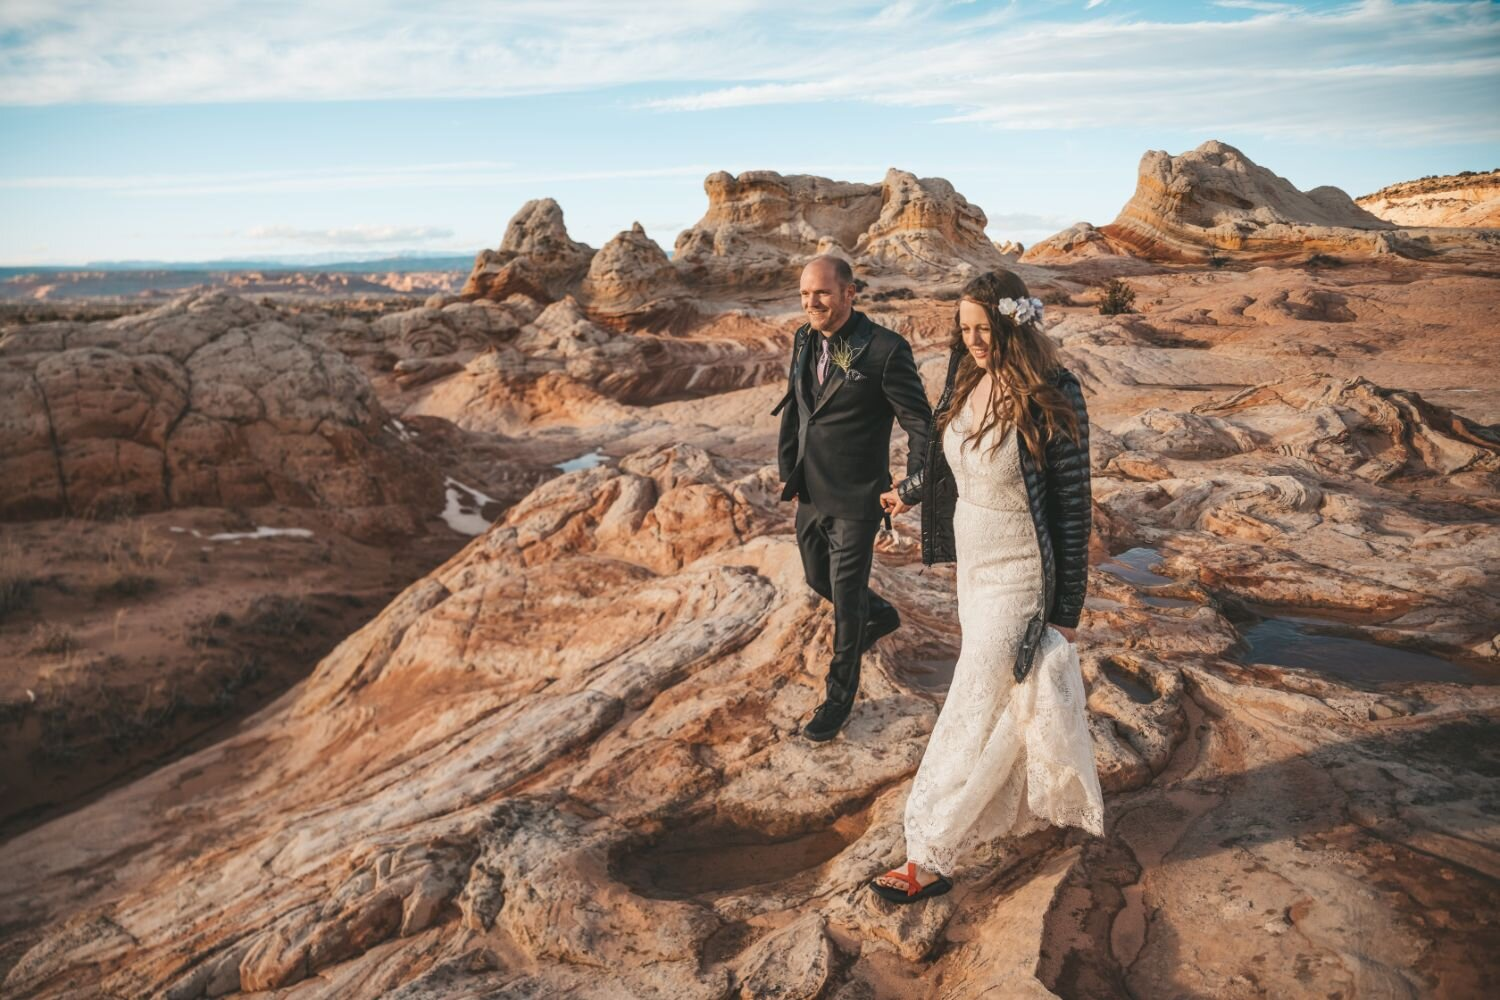 utah-desert-adventure-elopement-down-jacket